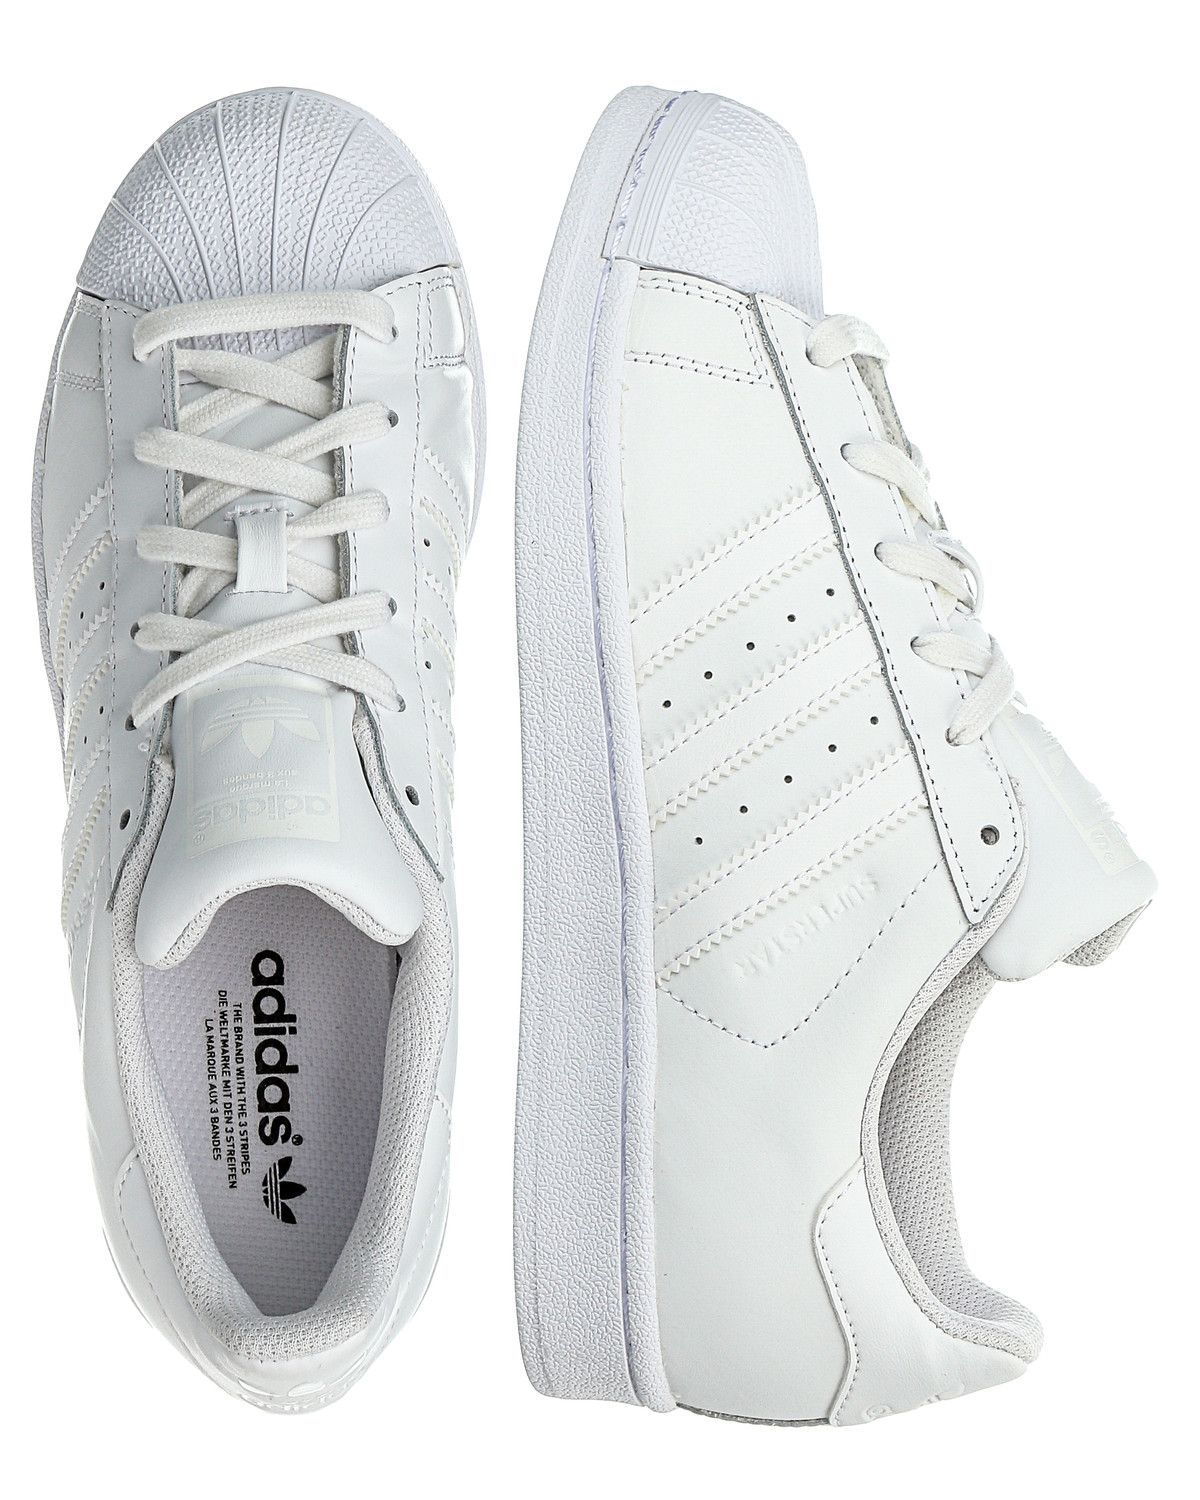 Superstar Kleding.Adidas Originals Superstar Sneakers White Kleding Lente 2016